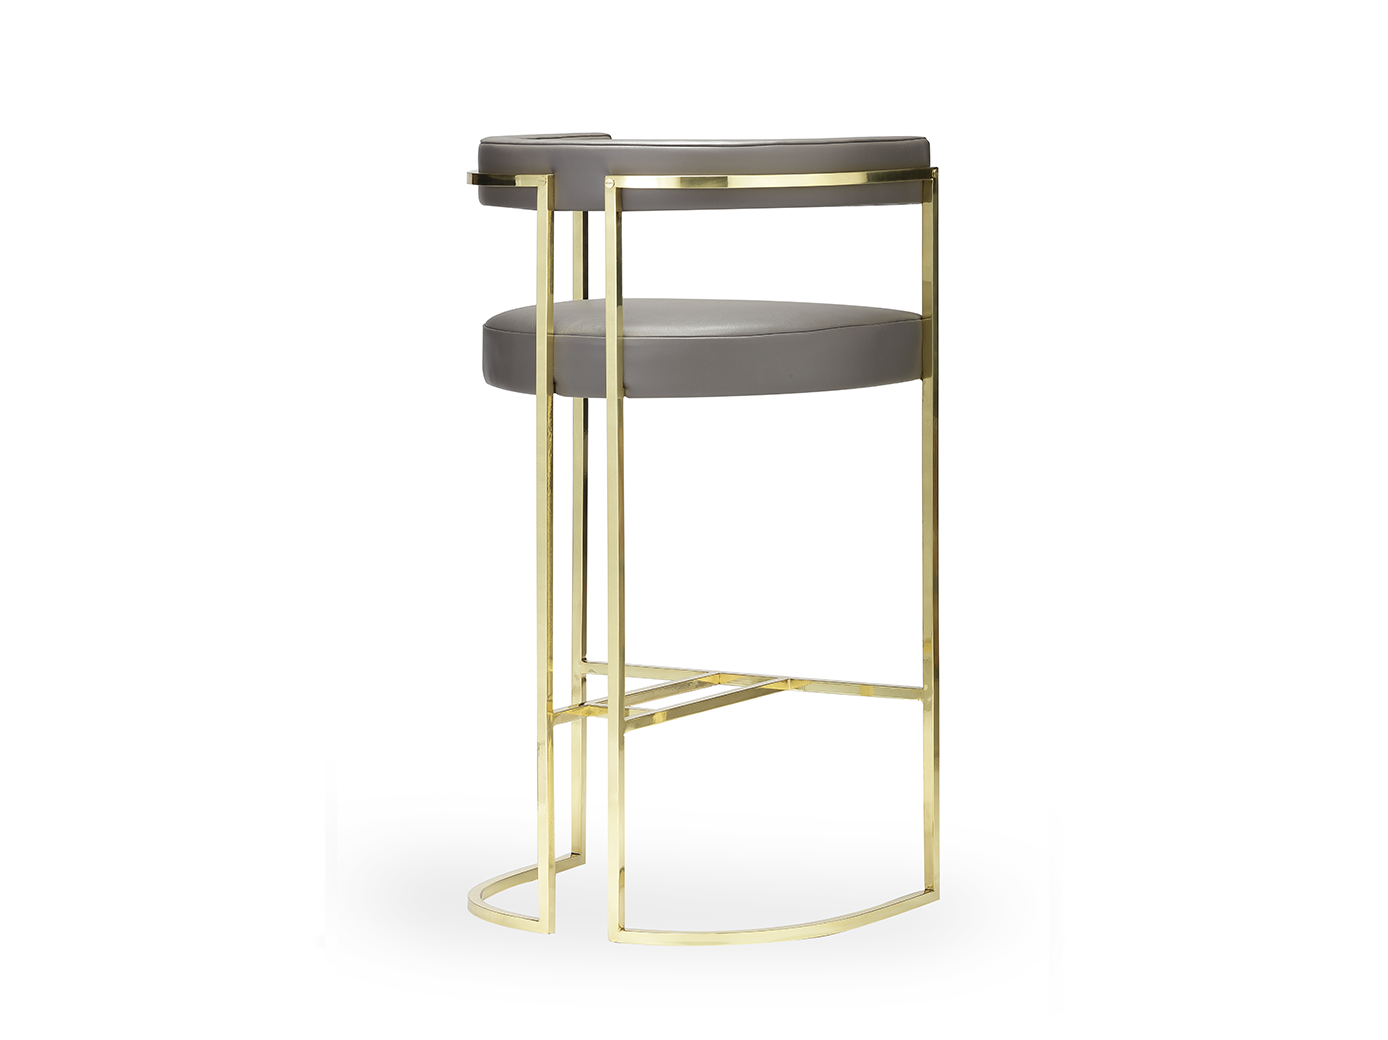 Shown upholstered in leather and featuring a curved polished brass frame making this furniture range so unique, this bar stool sets a very special scene for socialising. (...)